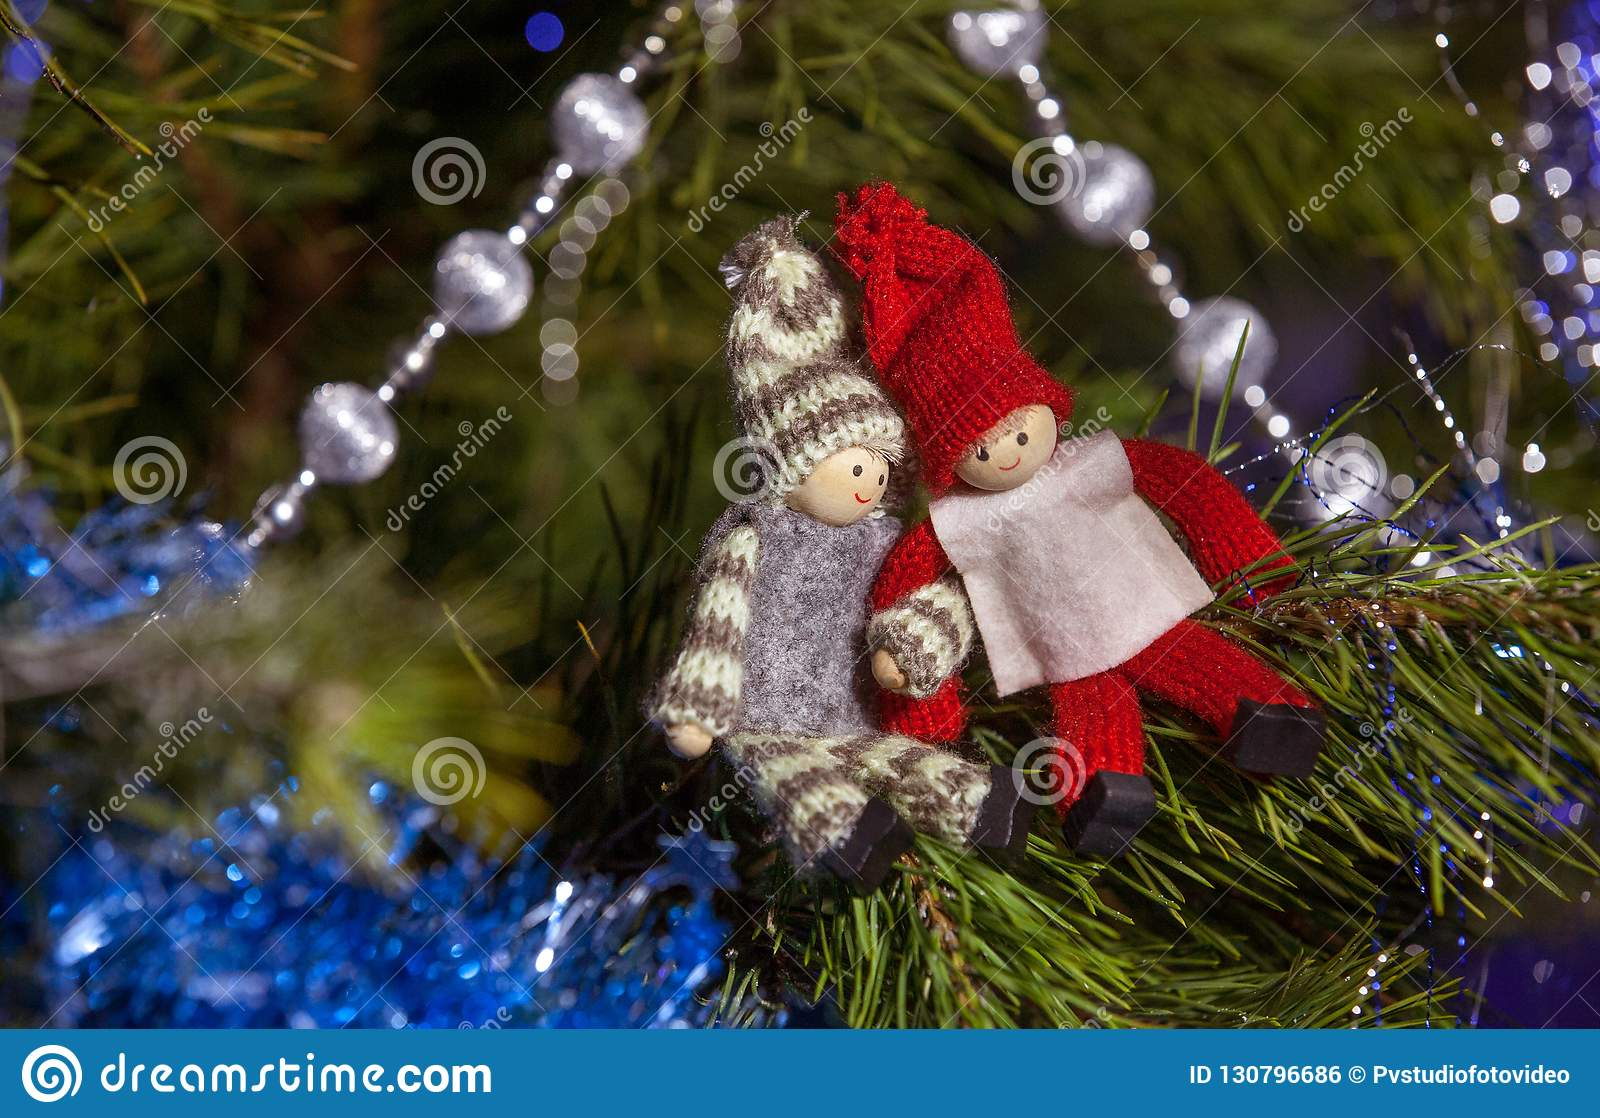 Wooden boy and girl figurines on the Christmas tree branch. Christmas decor.